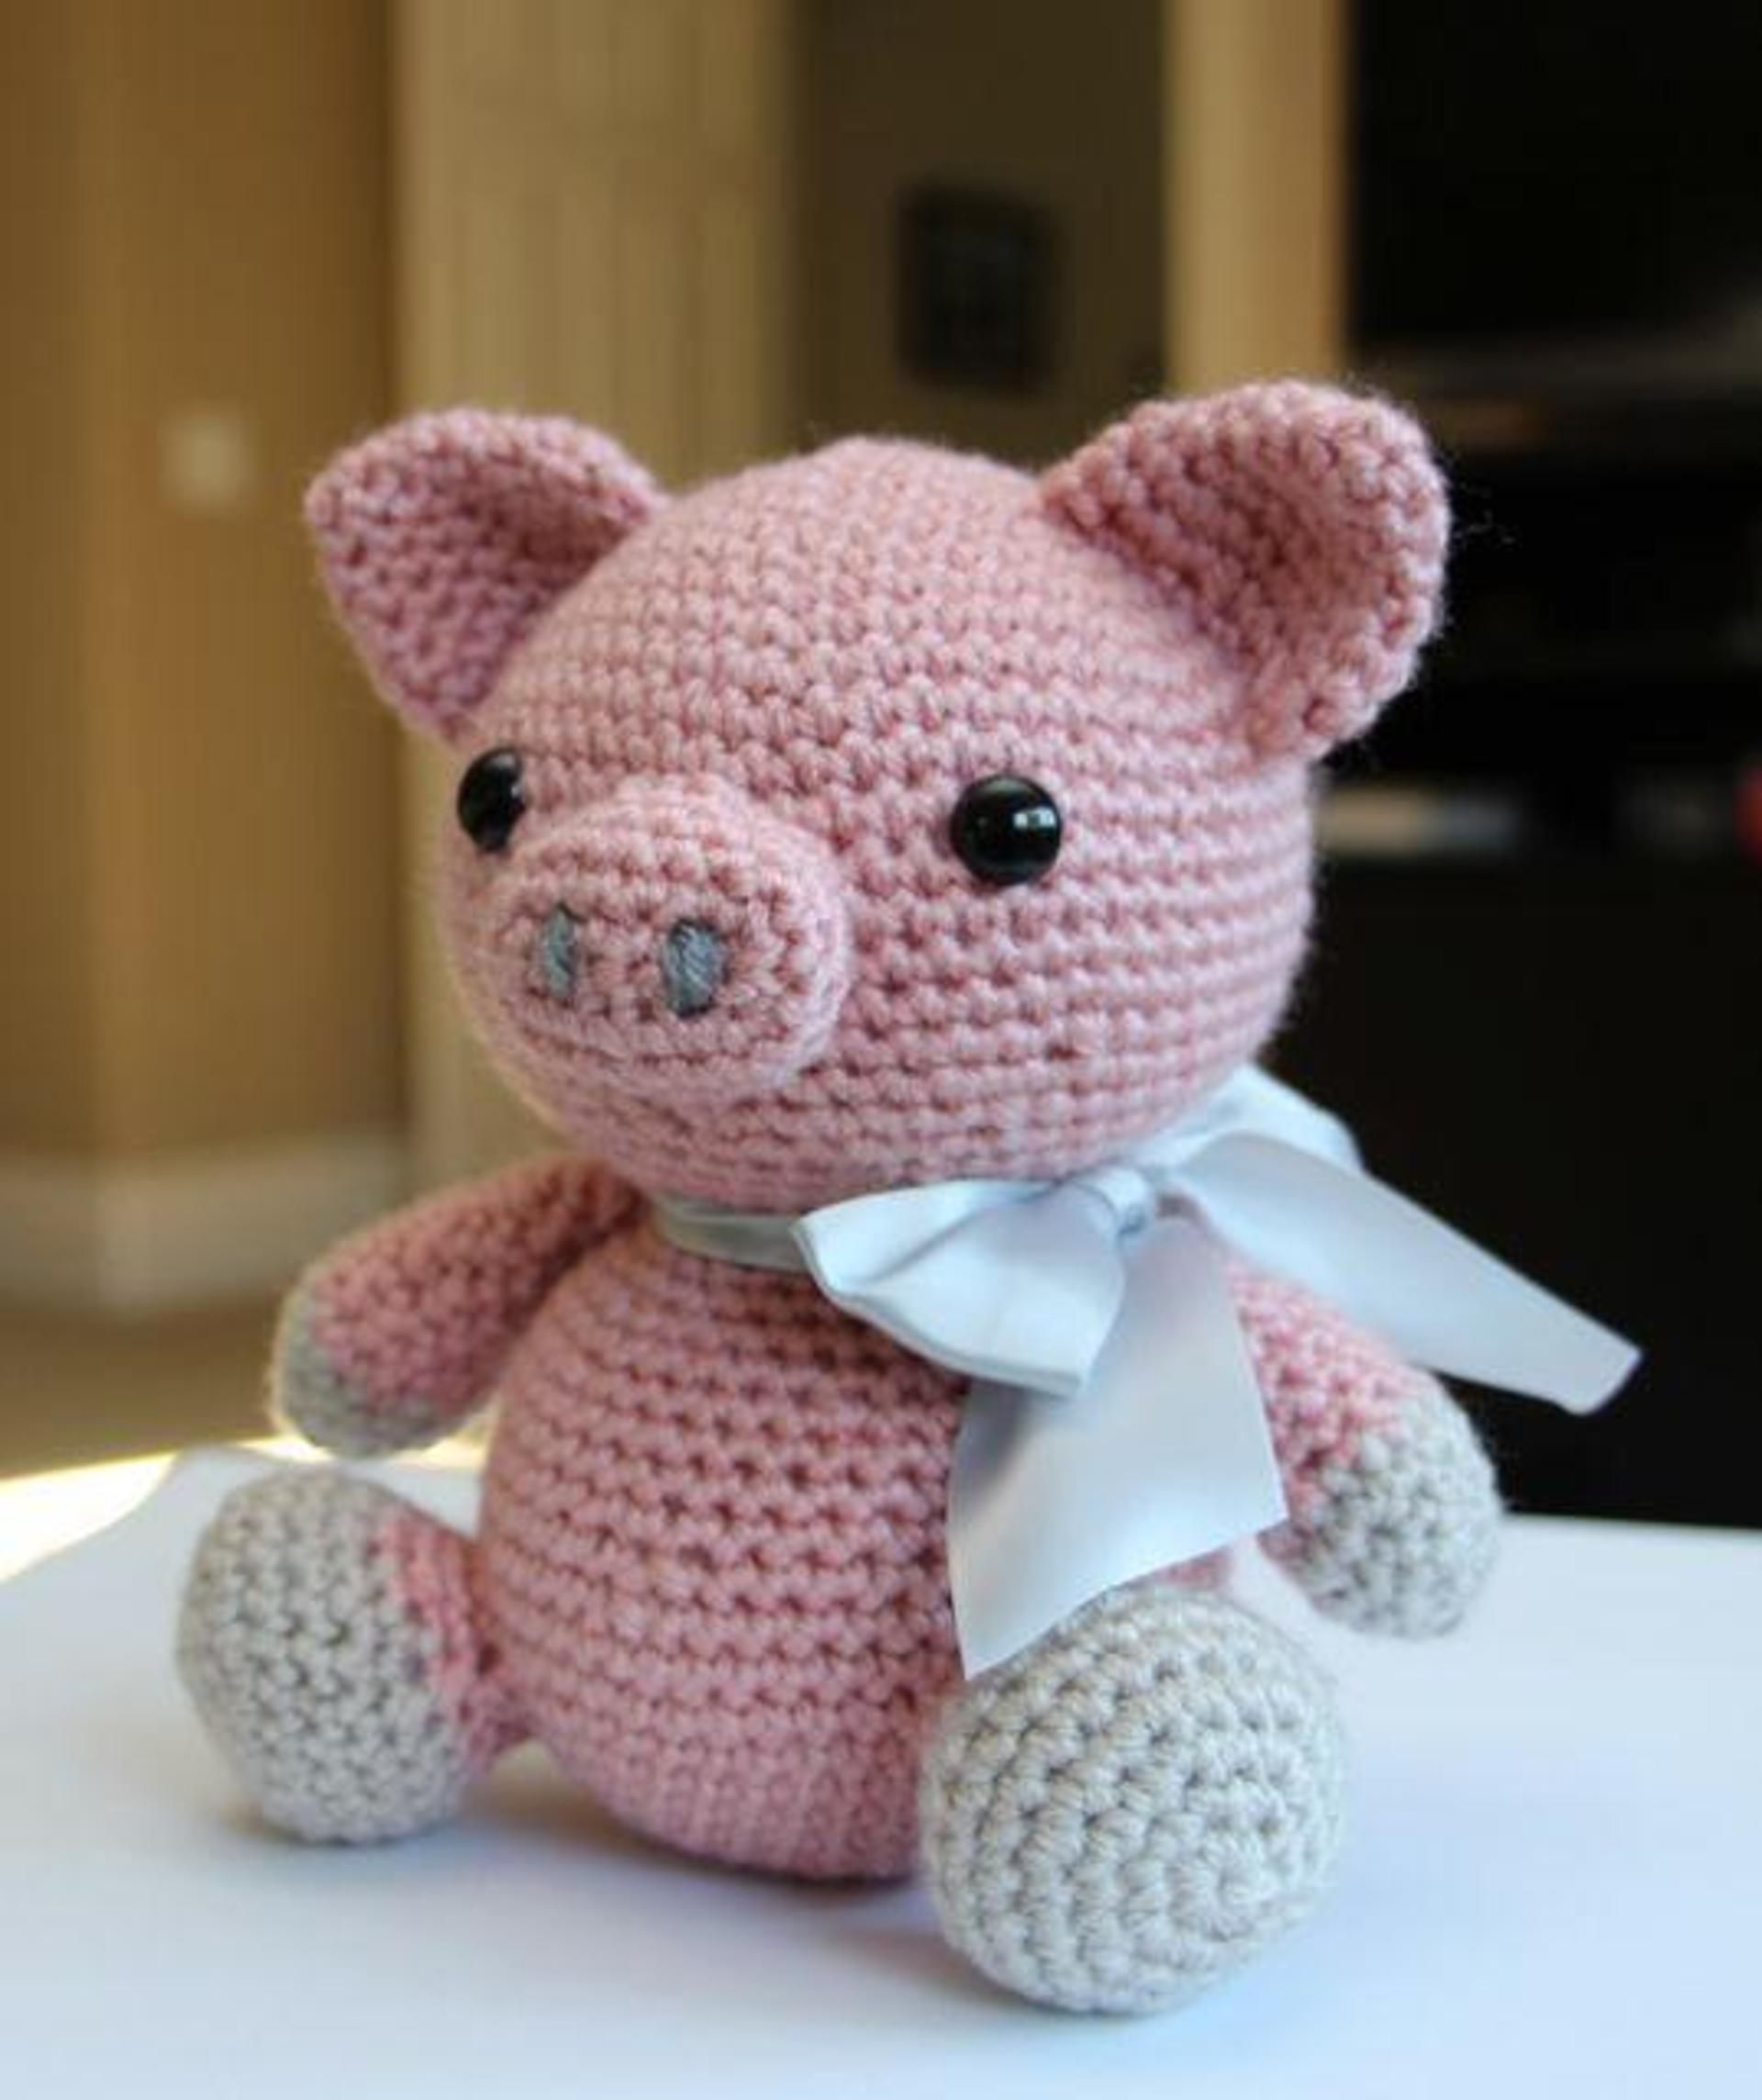 Amigurumi Pattern - Hamlet the Pig | Craftsy | Crochet | Pinterest ...